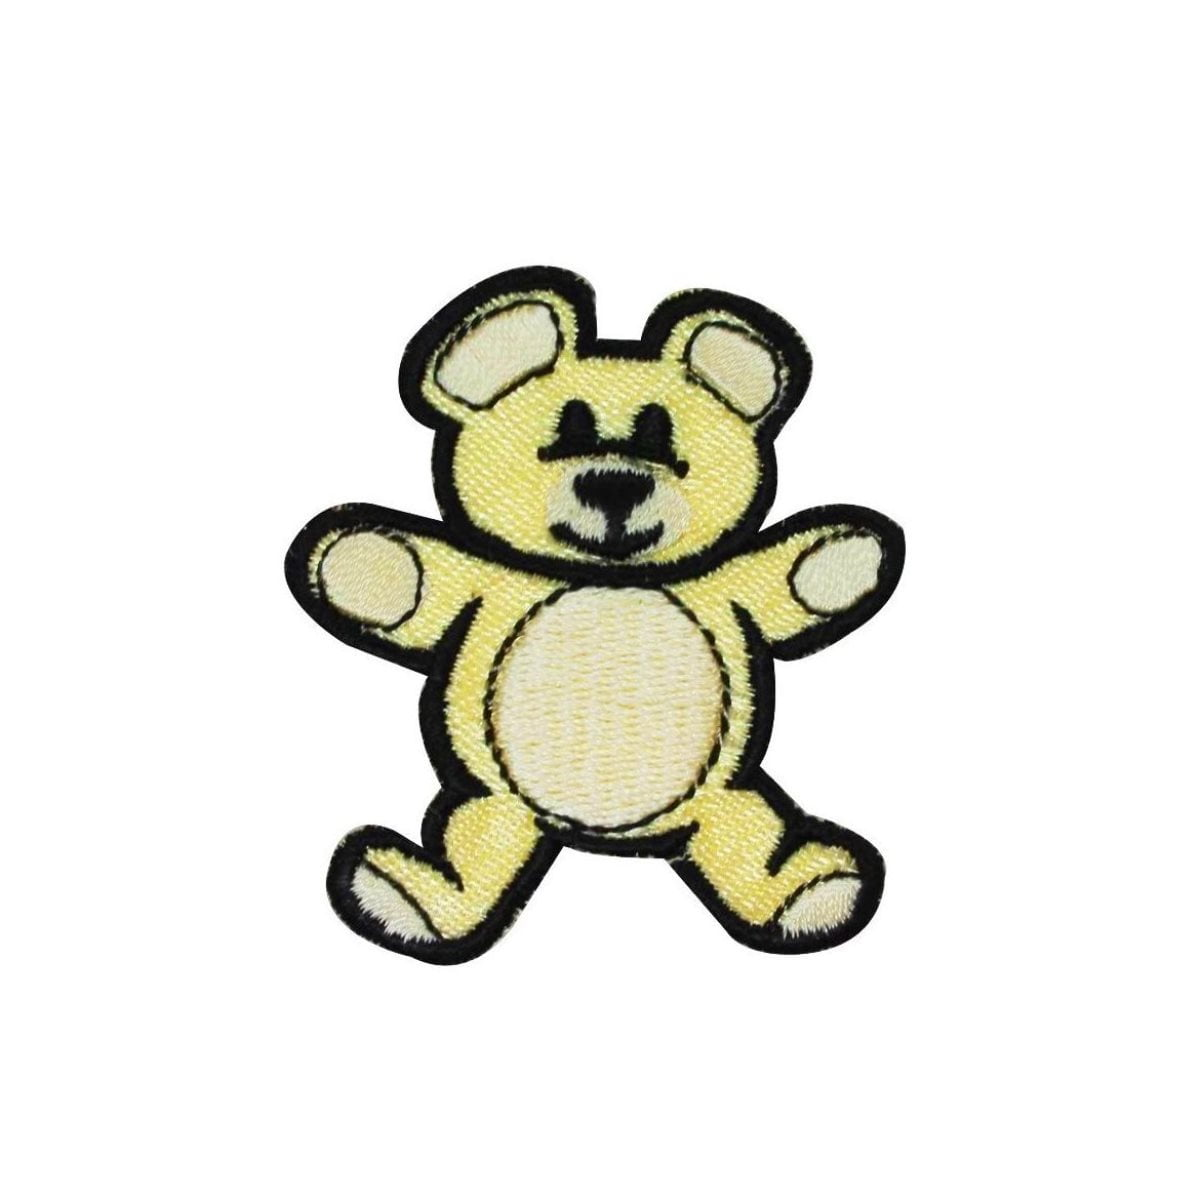 Teddy Bear Patch Children Stuffed Animal Toy Friend Embroidered Iron On Applique